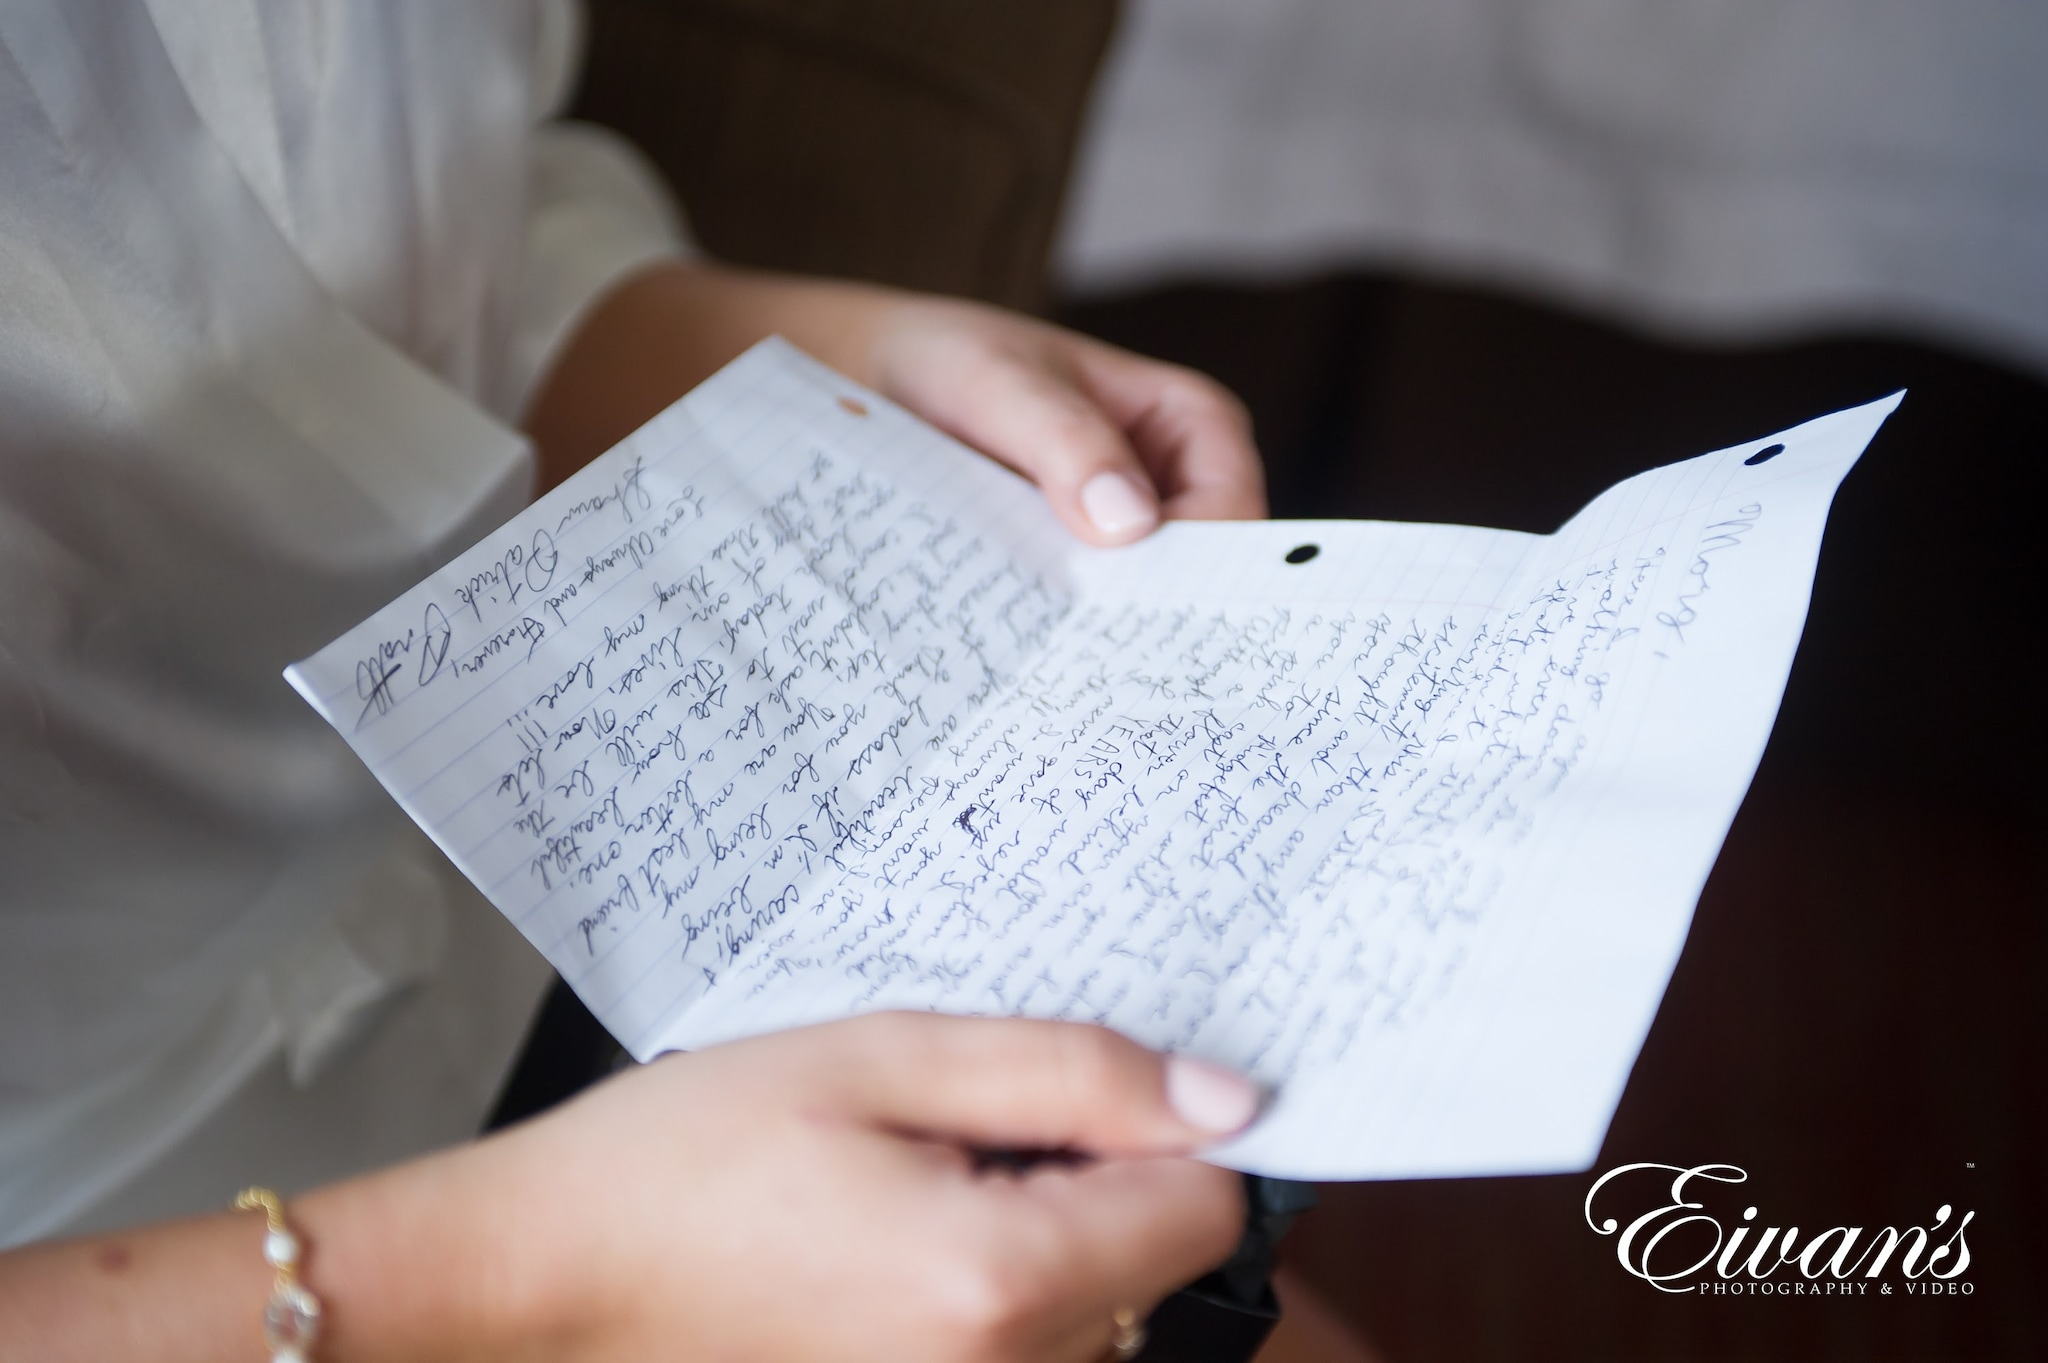 Examples Of Wedding Vows Eivan S Photography Video